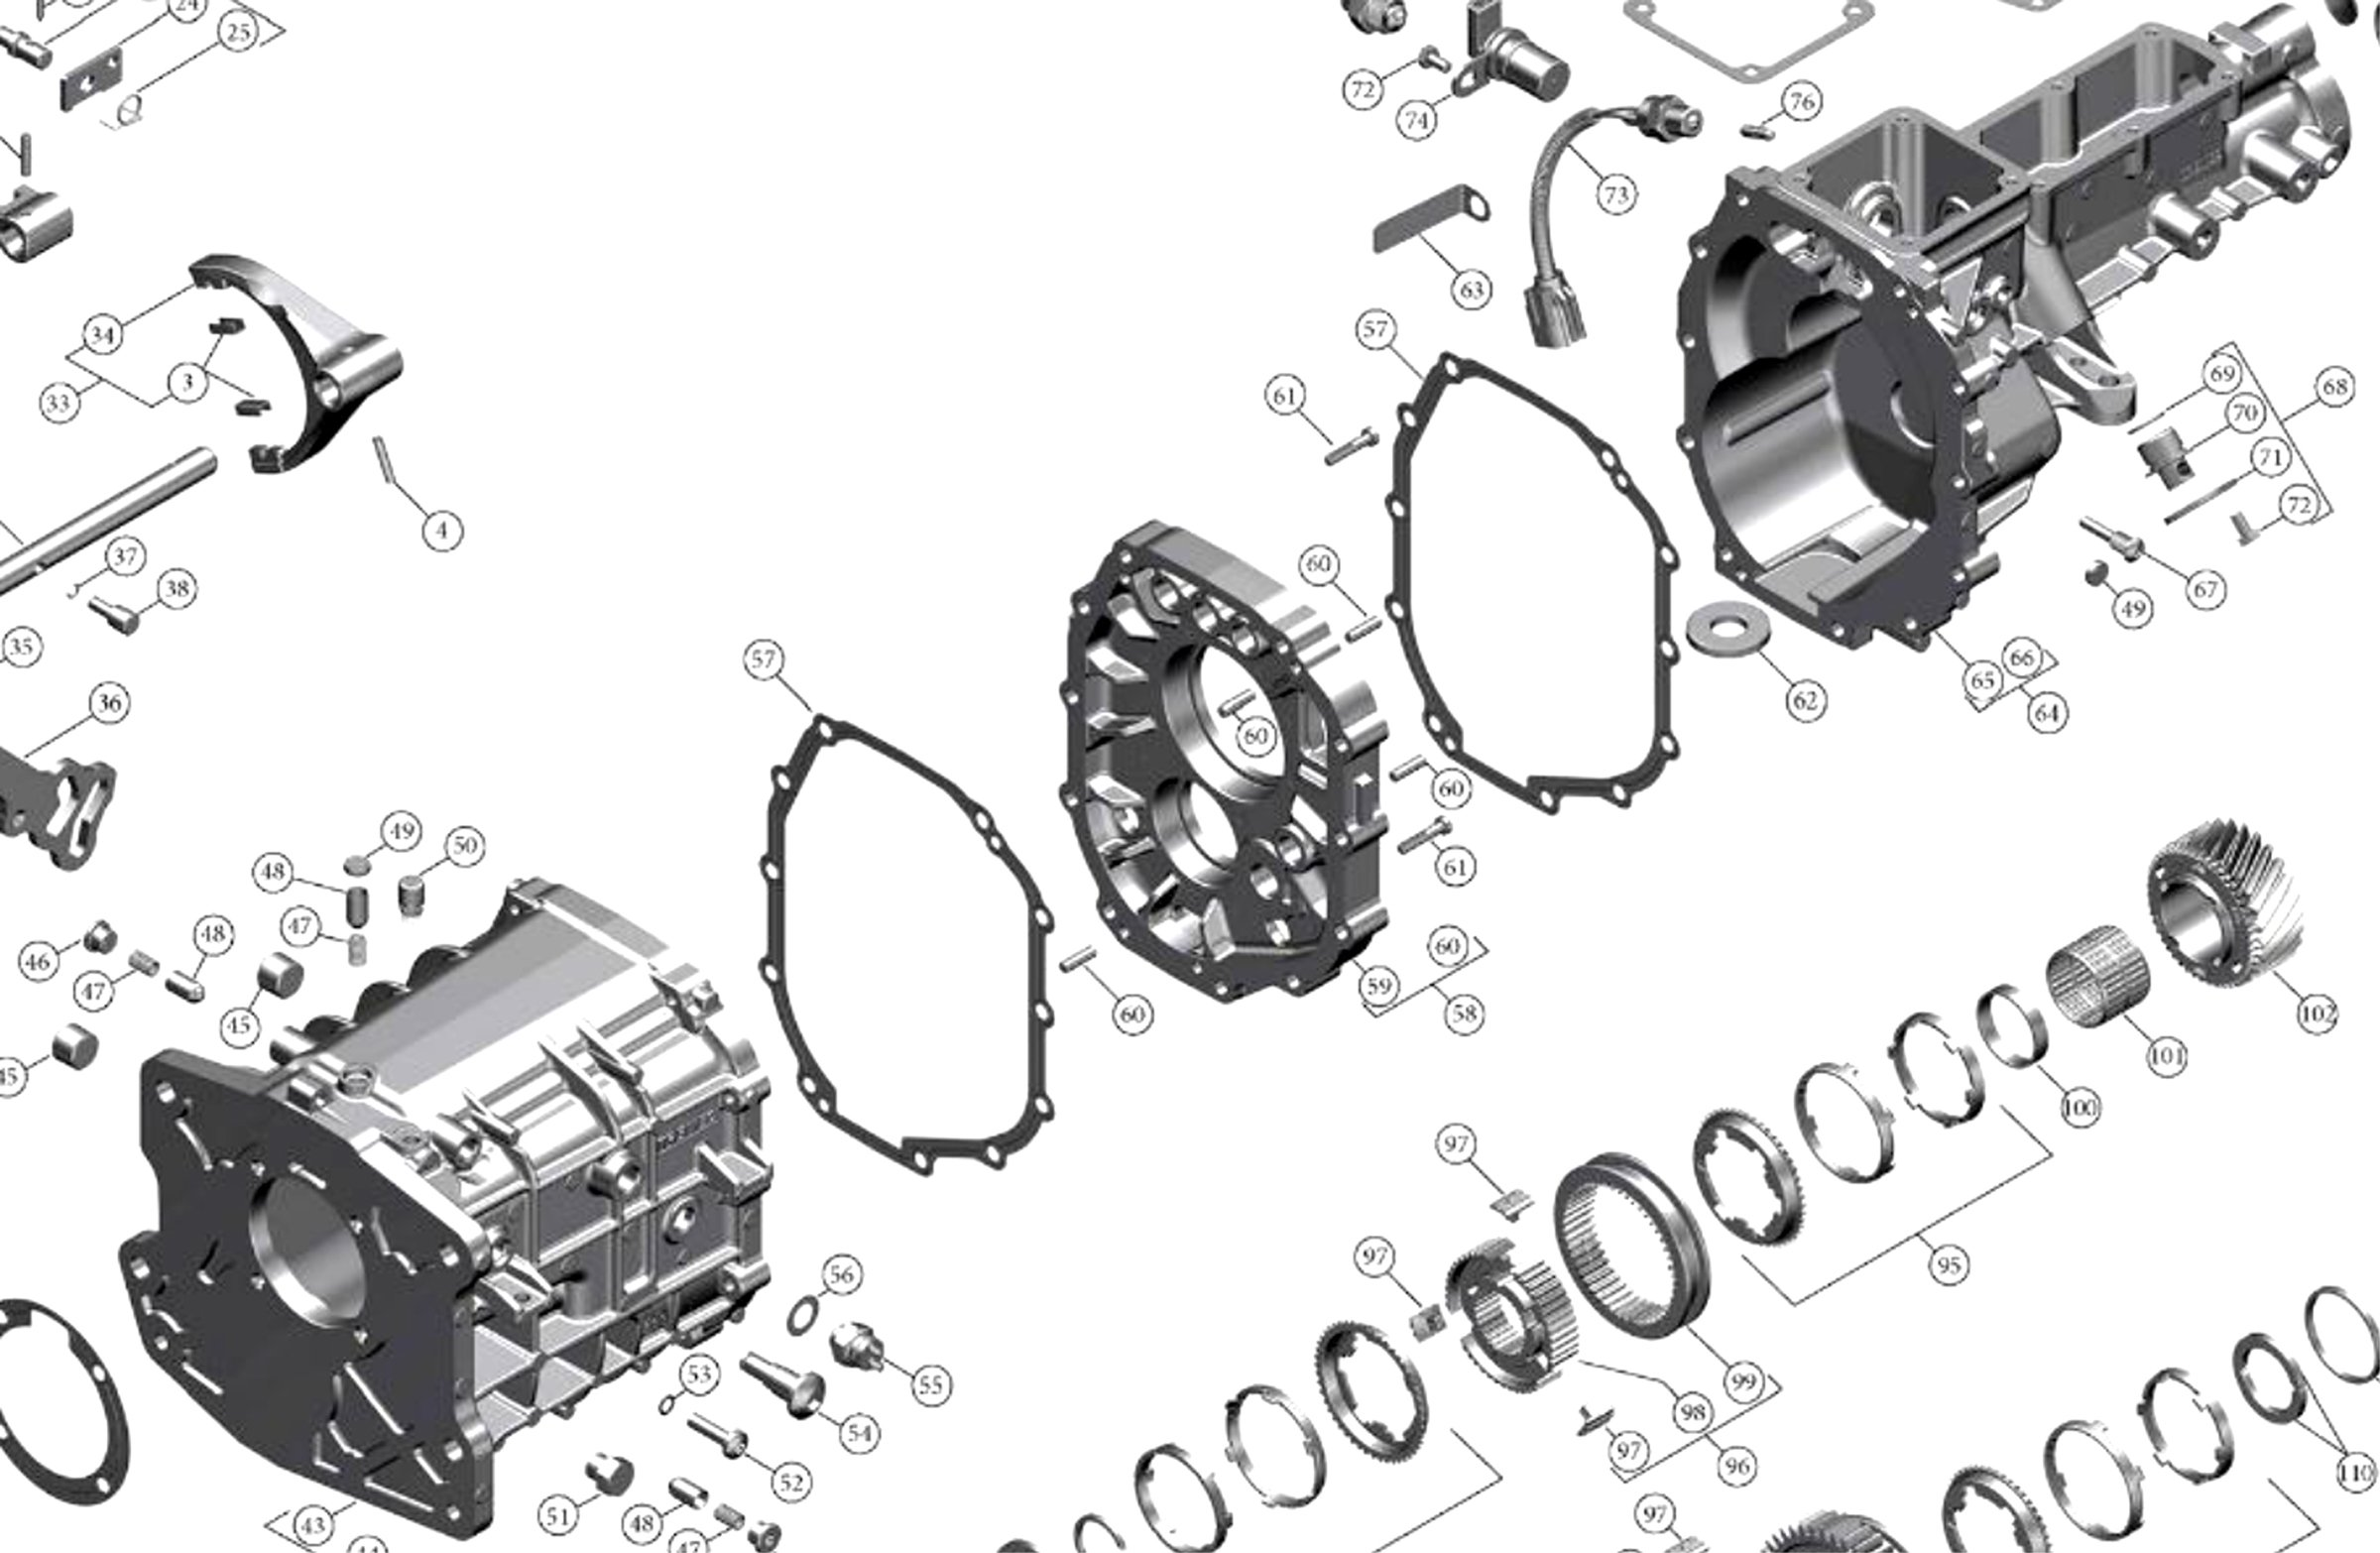 Tremec TKX exploded view